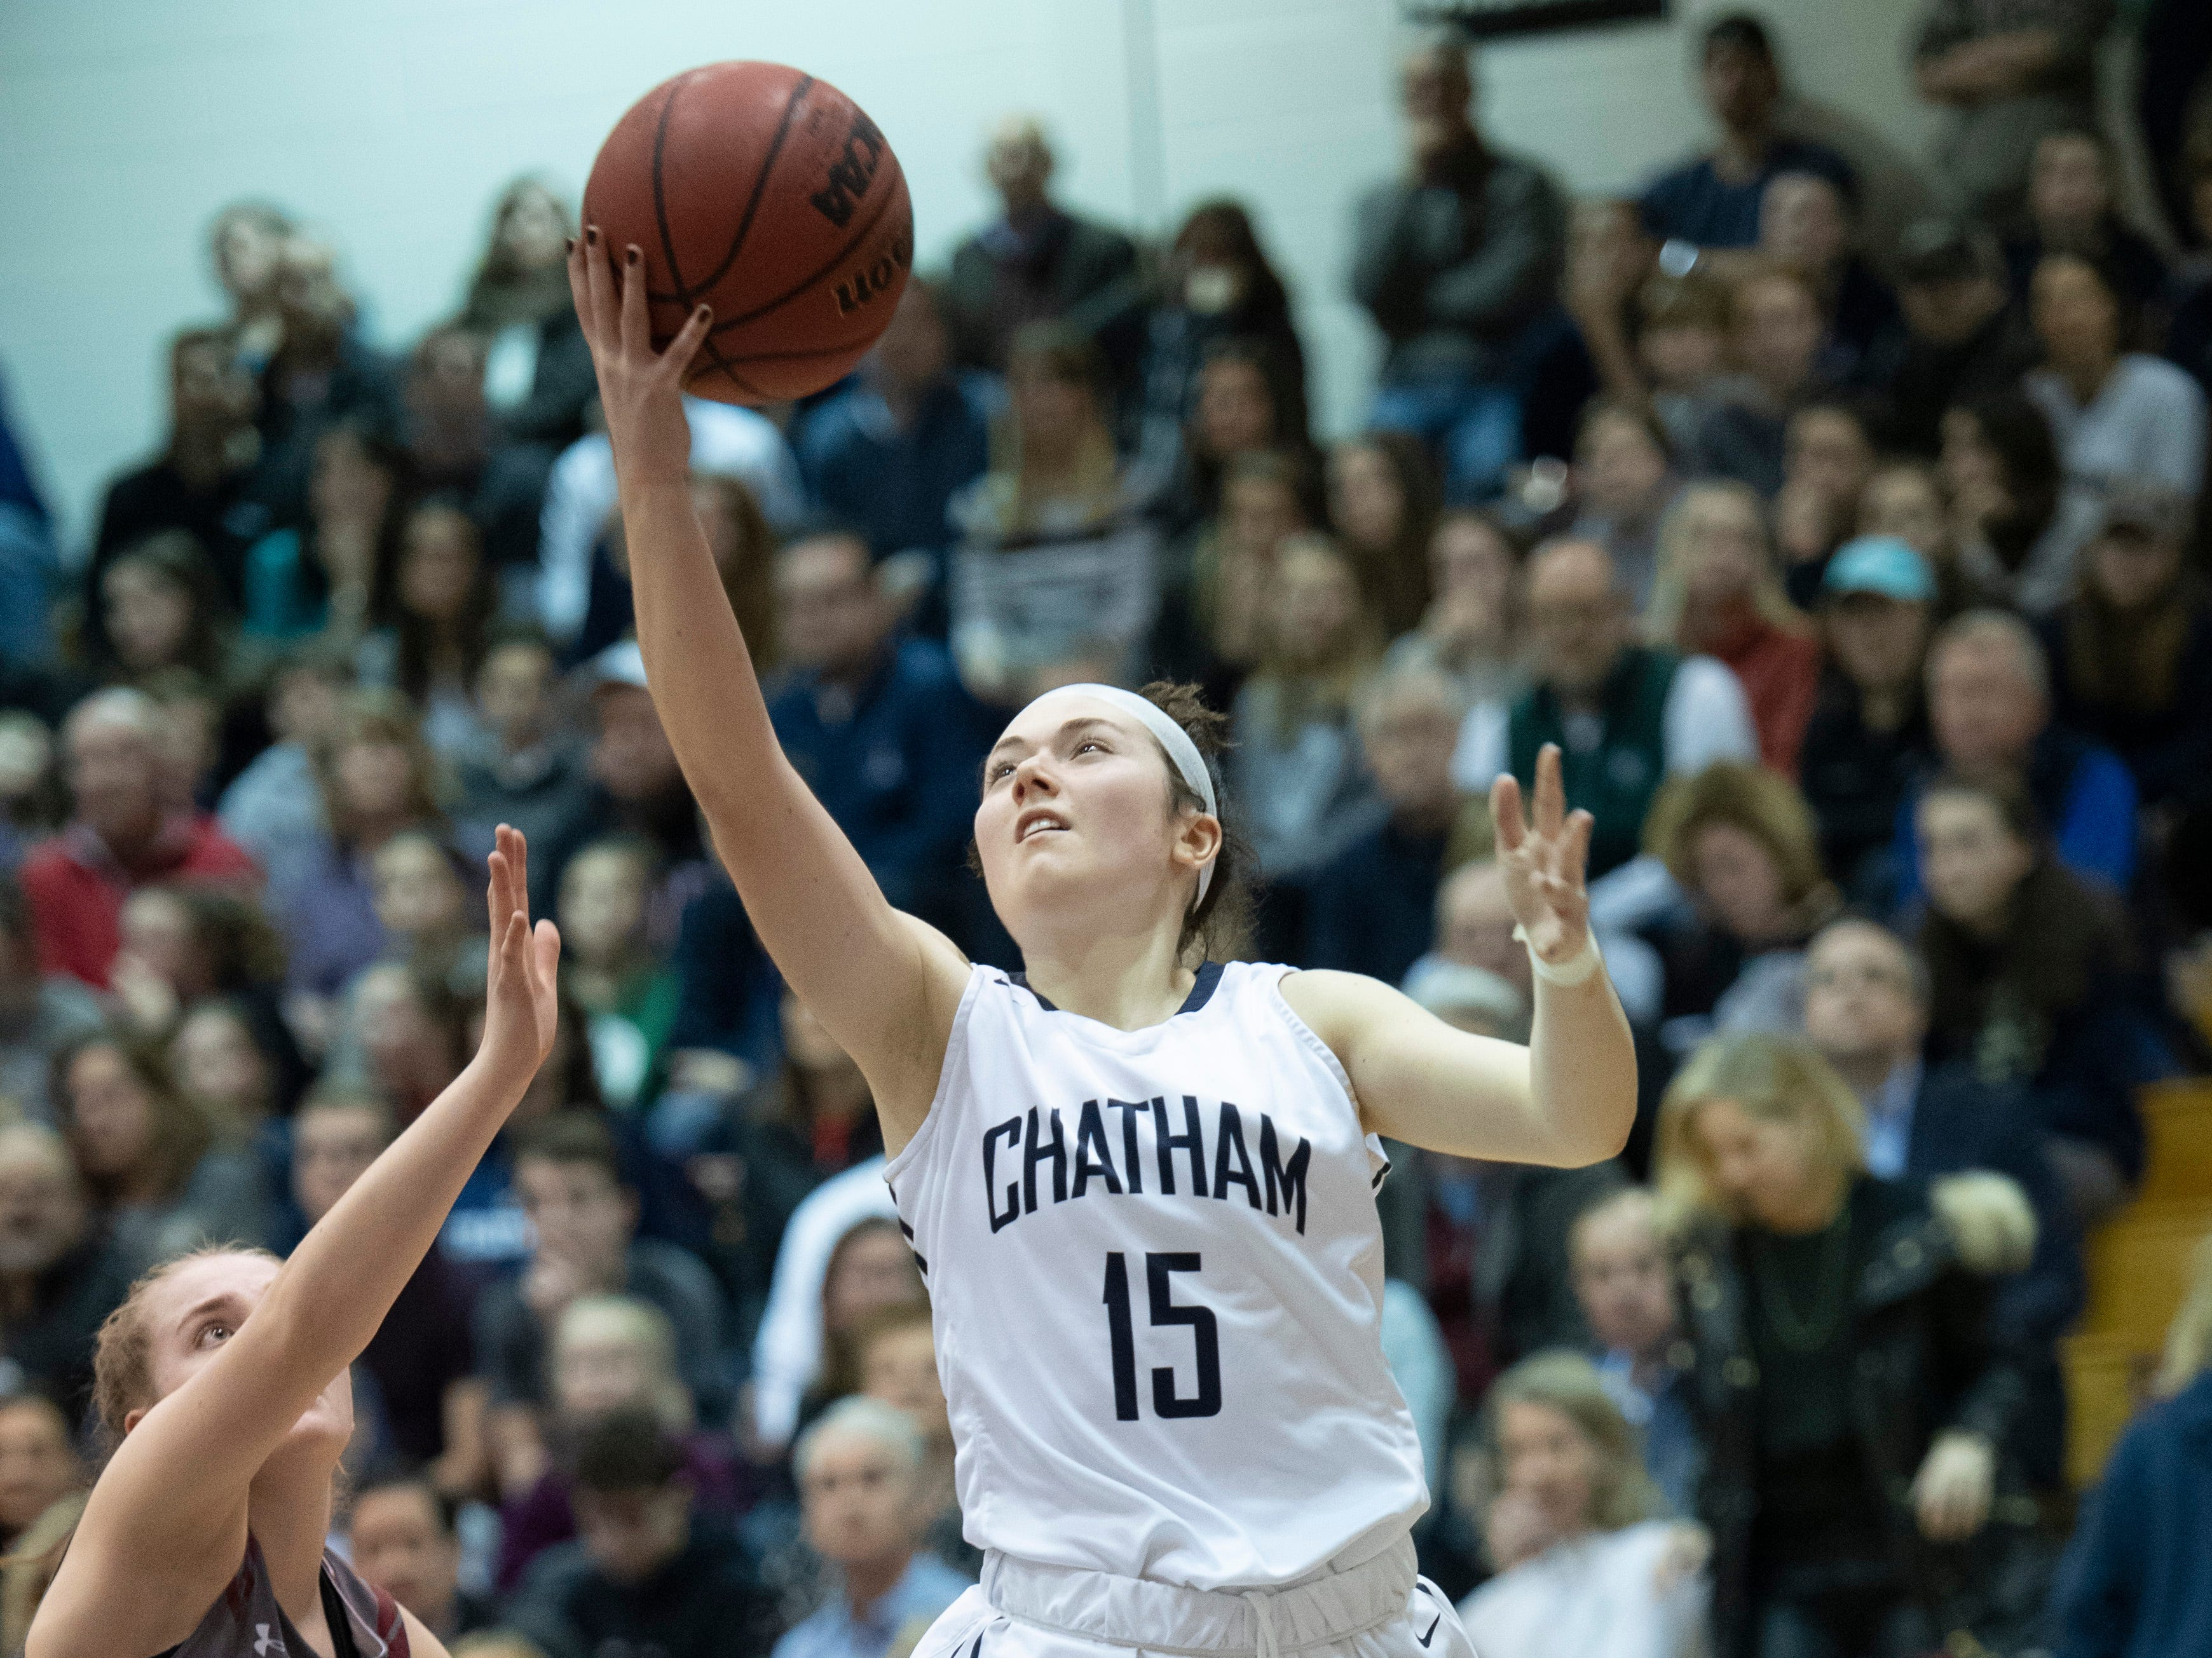 Chatham sophomore guard Tess Ford drives to the basket during the Morris County Tournament girls basketball final against Morristown-Beard at the County College of Morris in Randolph on Friday, February 22, 2019.